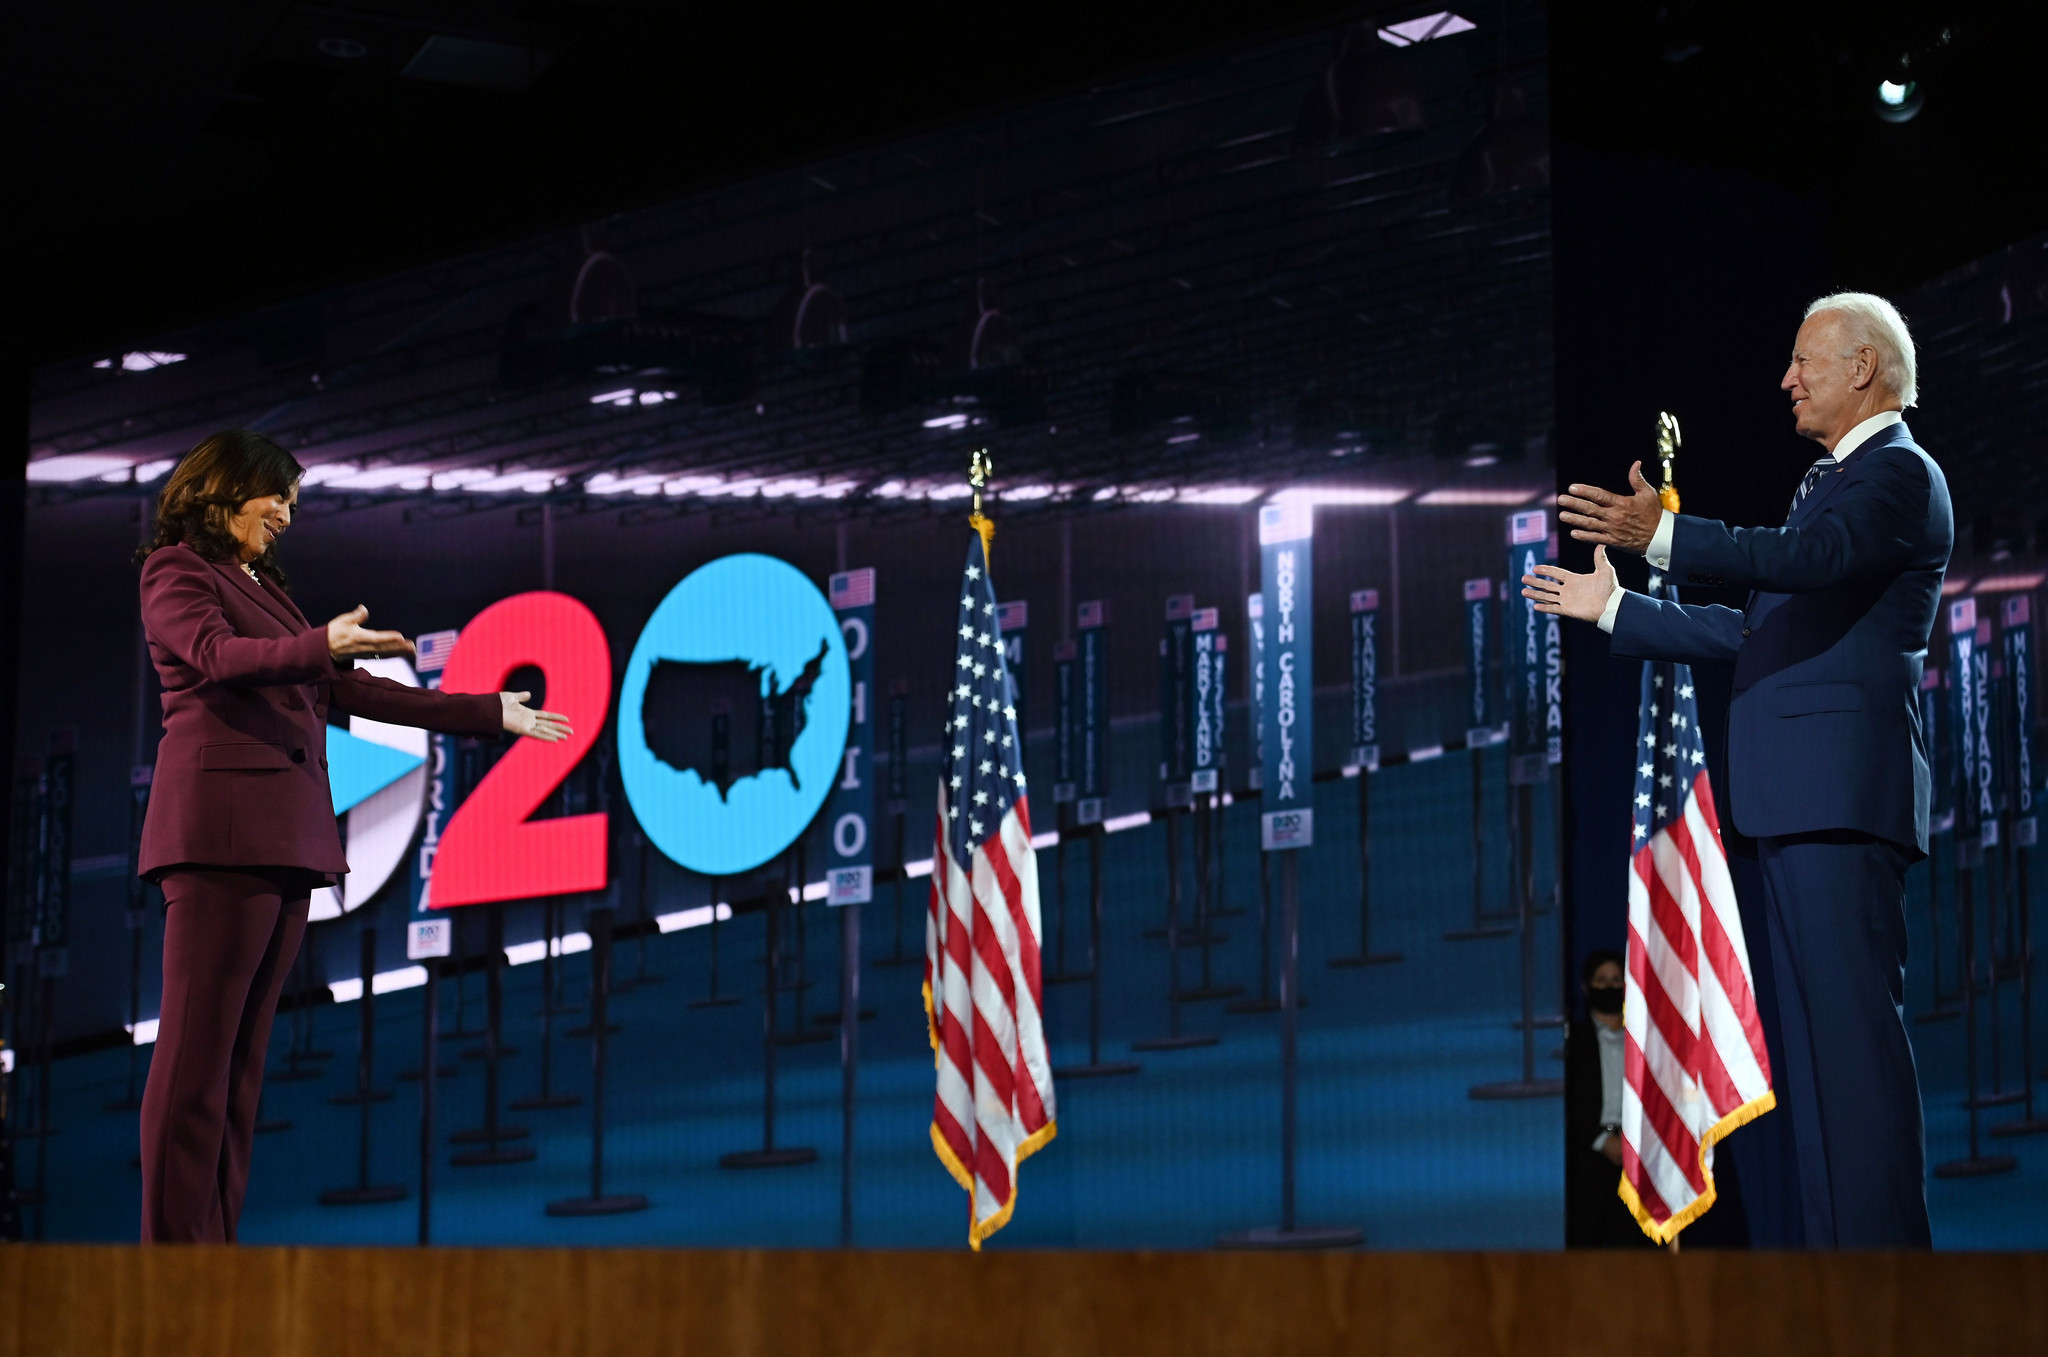 US: Democratic National Convention locks out workers and progressives